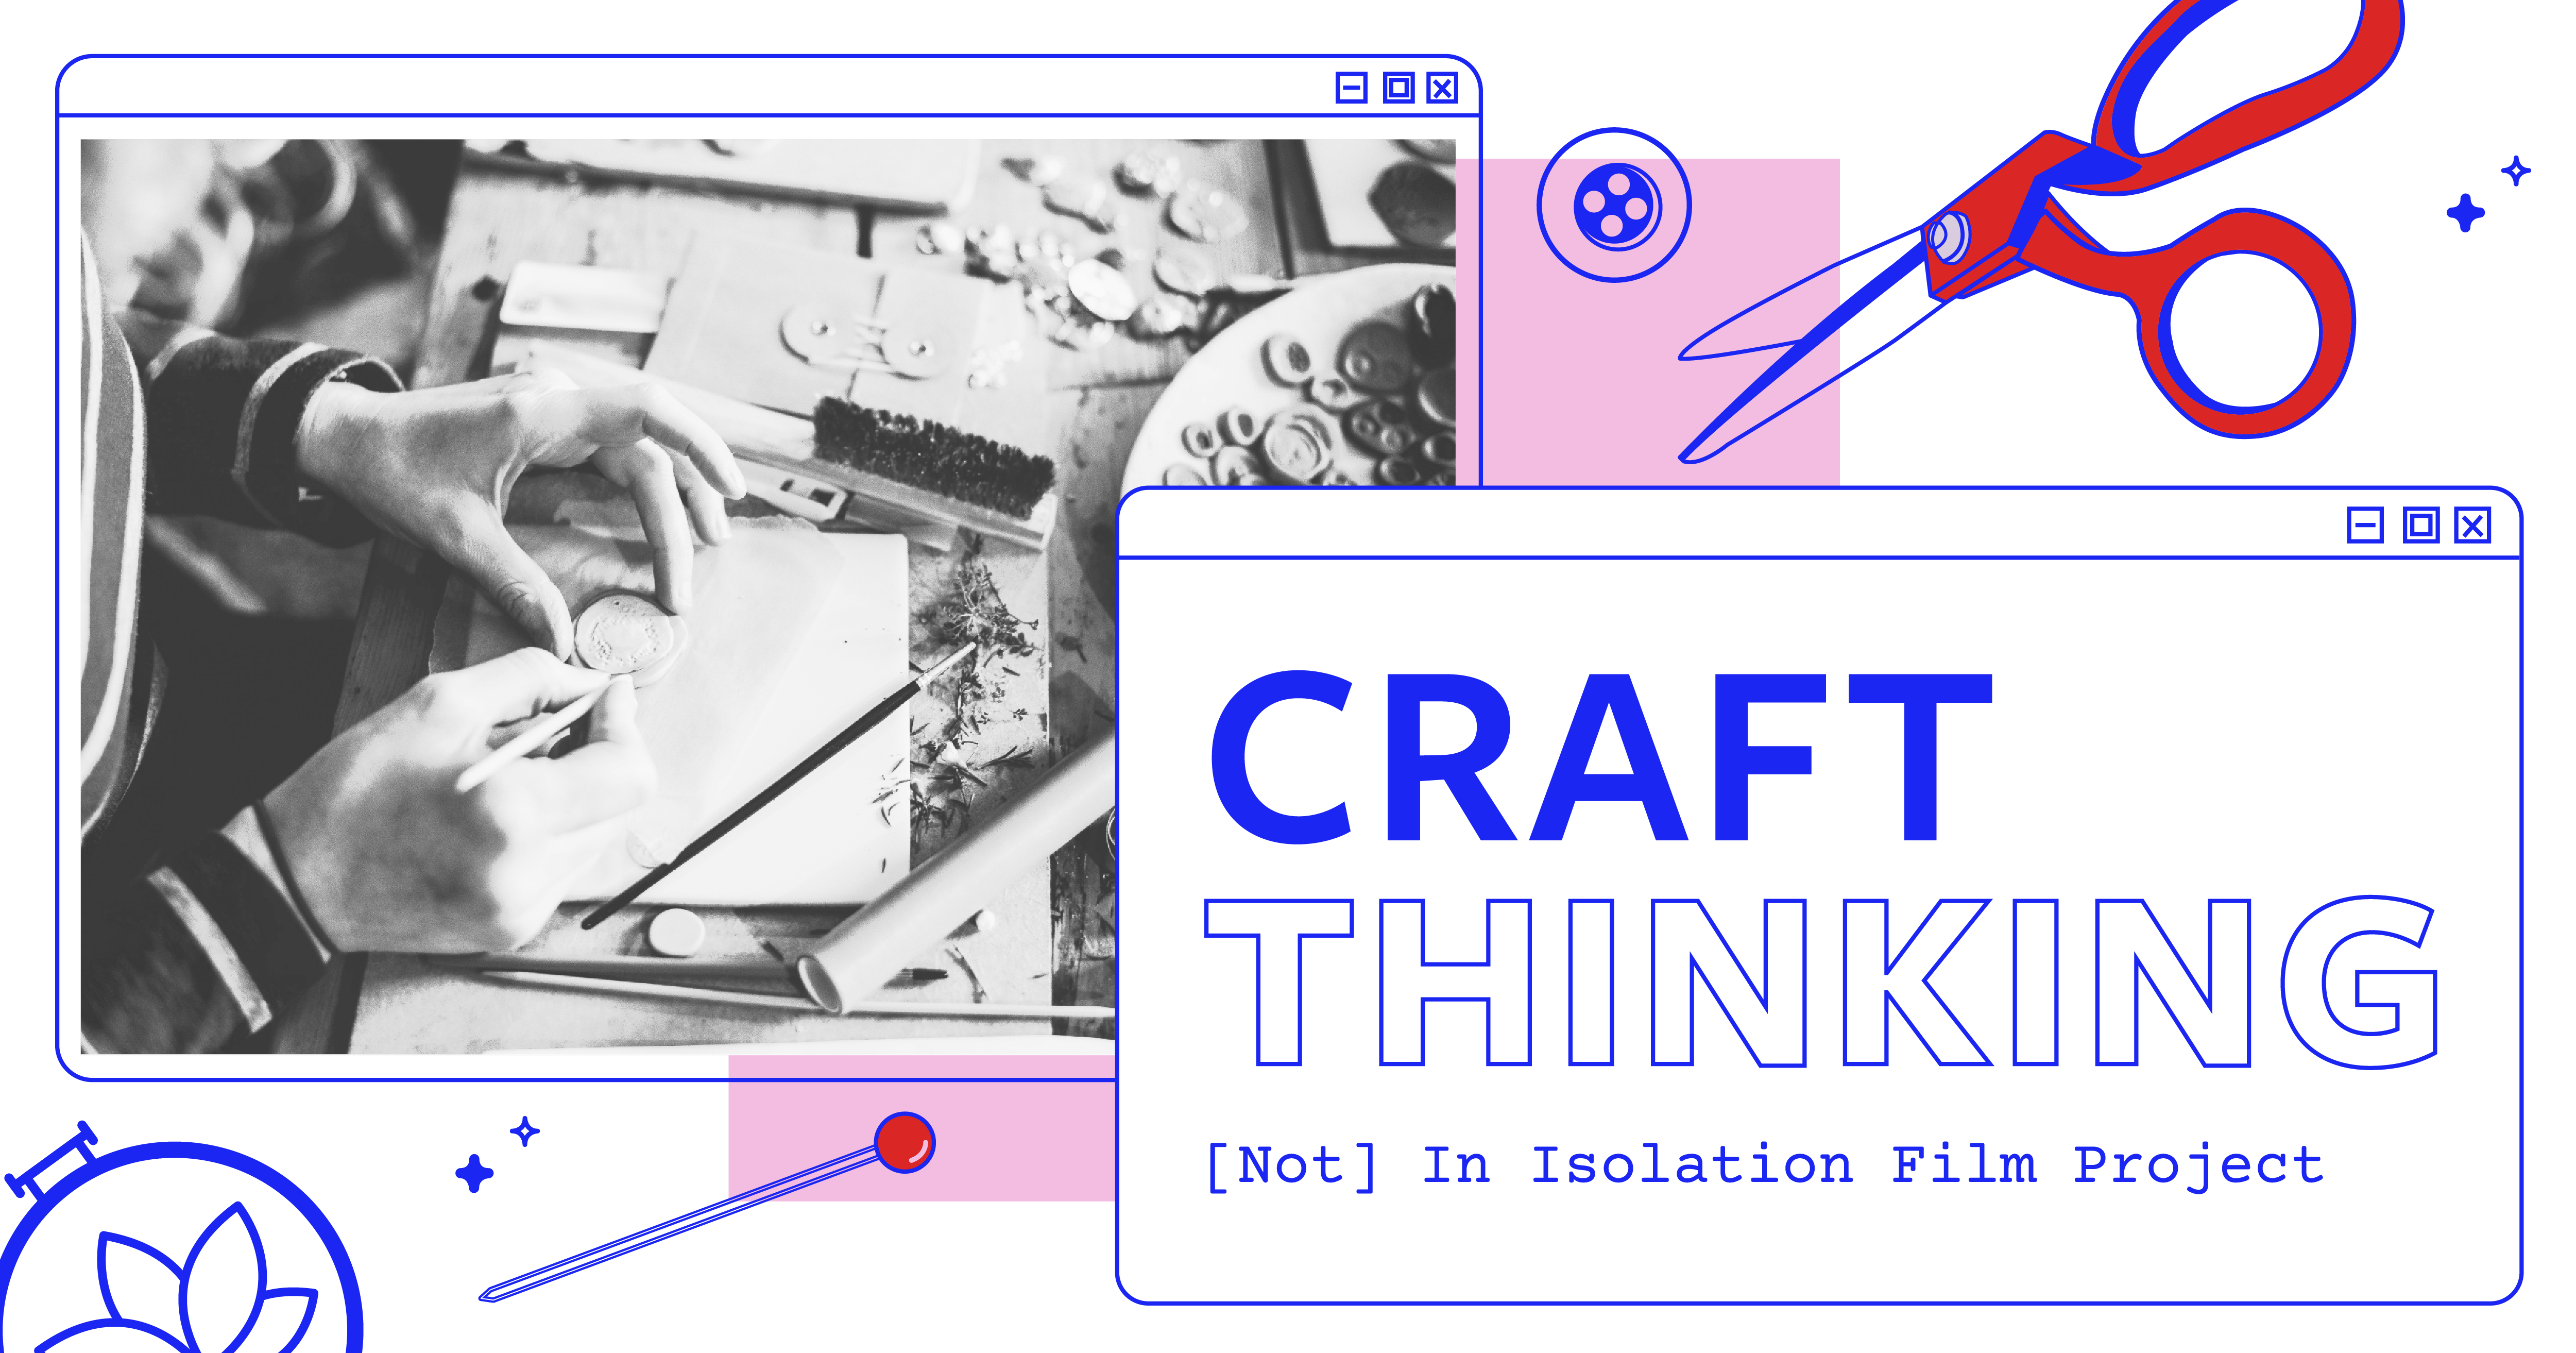 Craft Thinking Not In Isolation Film Project Header